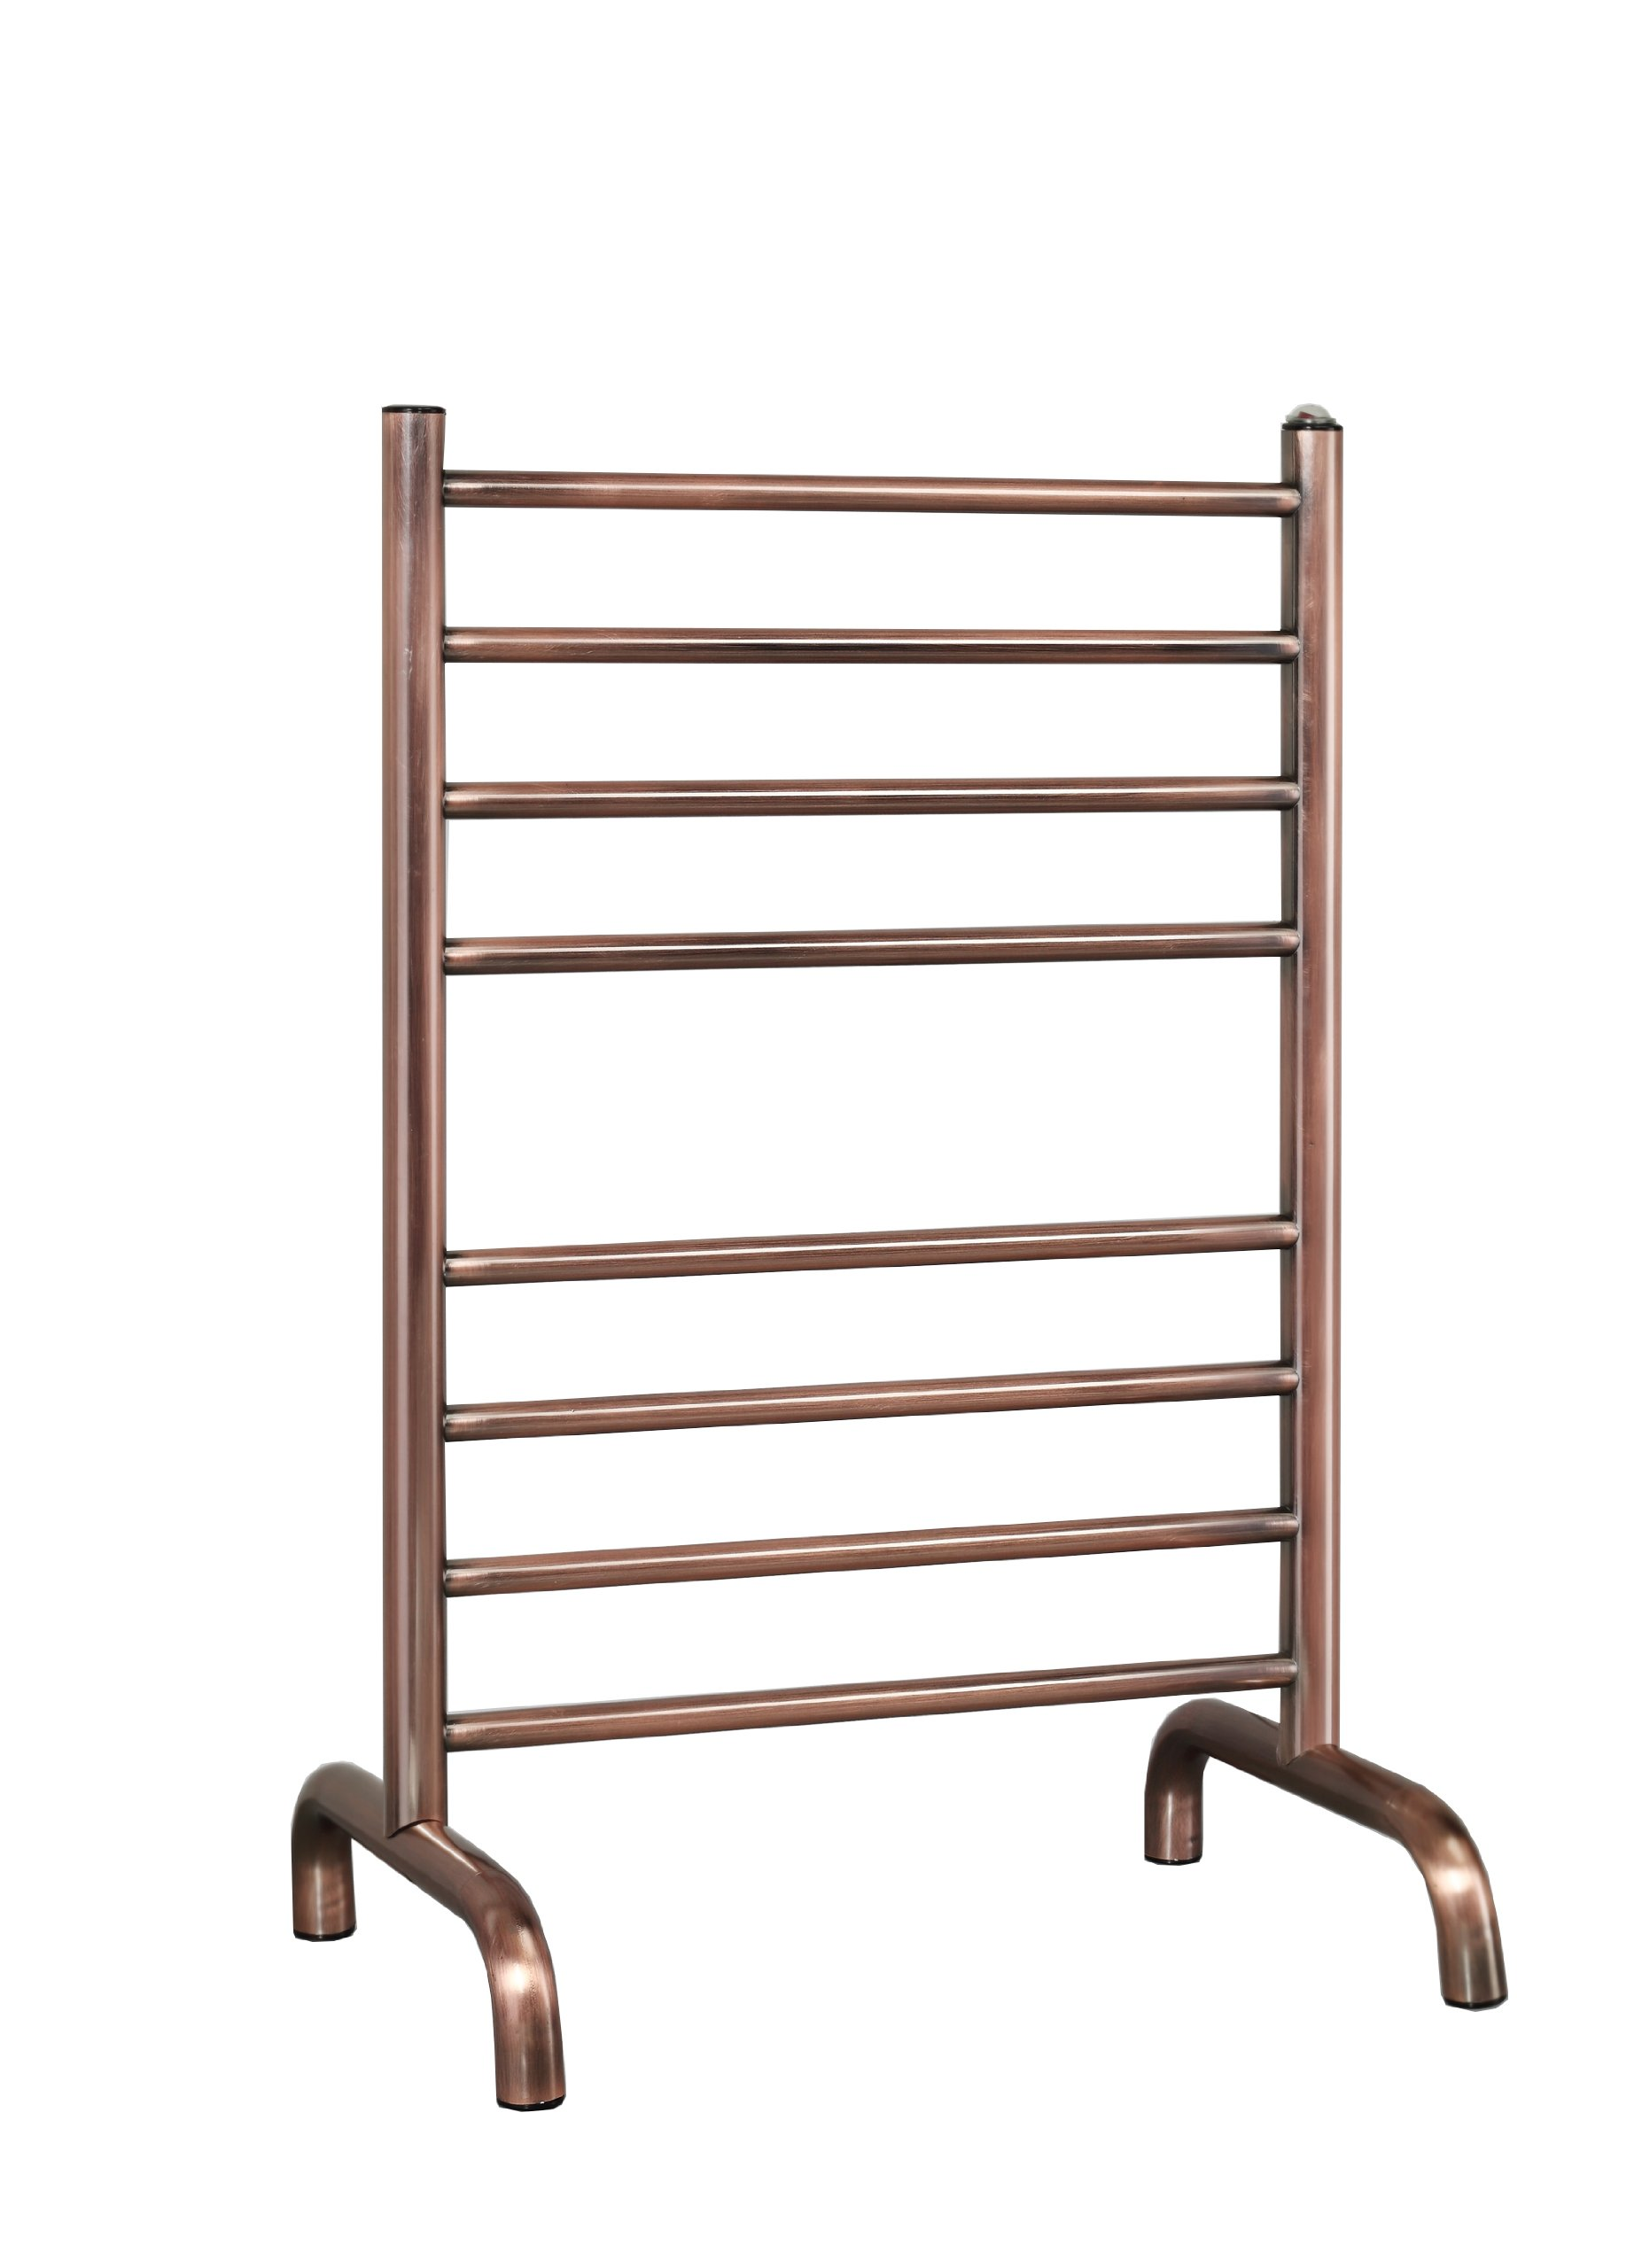 Virtu USA VTW-104A-ORB Kozë Collection Towel Warmer, Oil Rubbed Bronze by Virtu USA